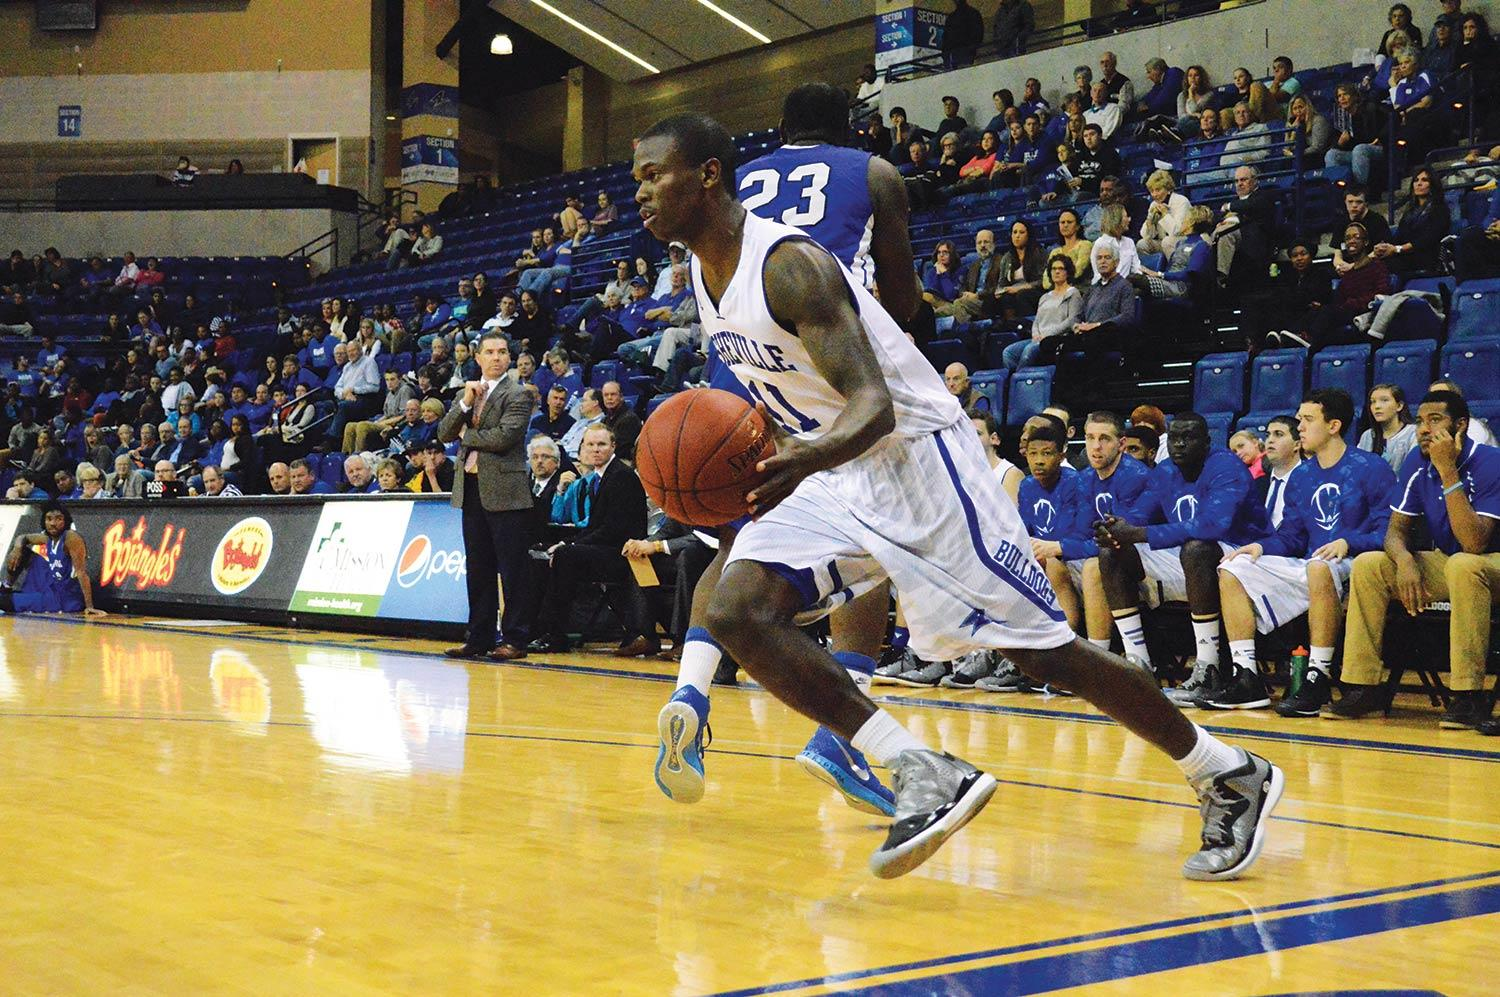 Marcus Neely, a rising sophomore, gains possession of the ball during the exhibition game against Brevard College.  Photo by Max Carter